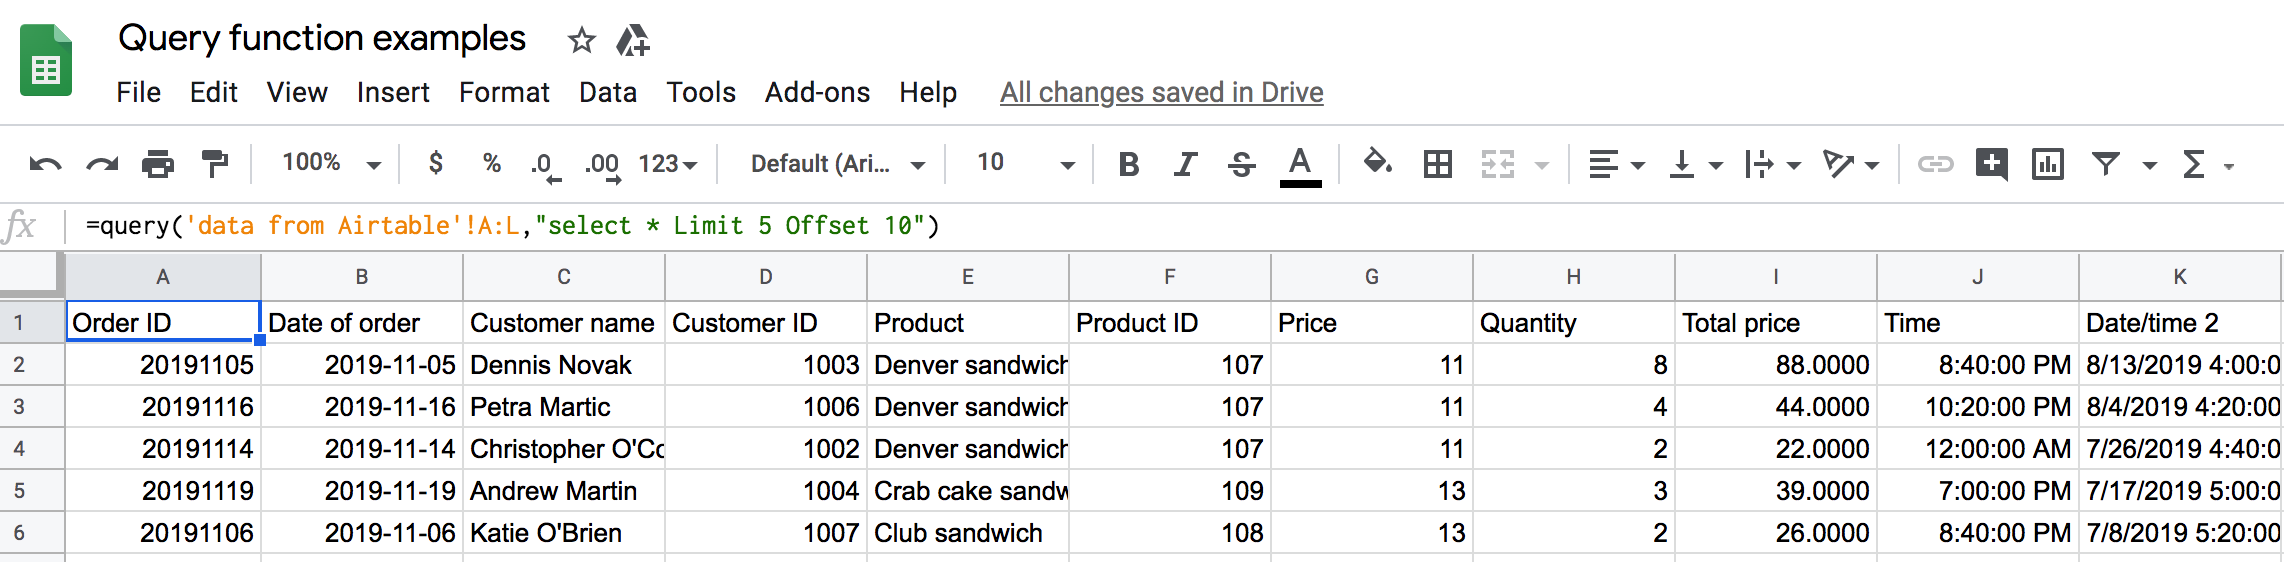 Usage of Google Sheets Query OFFSET accompanied by LIMIT